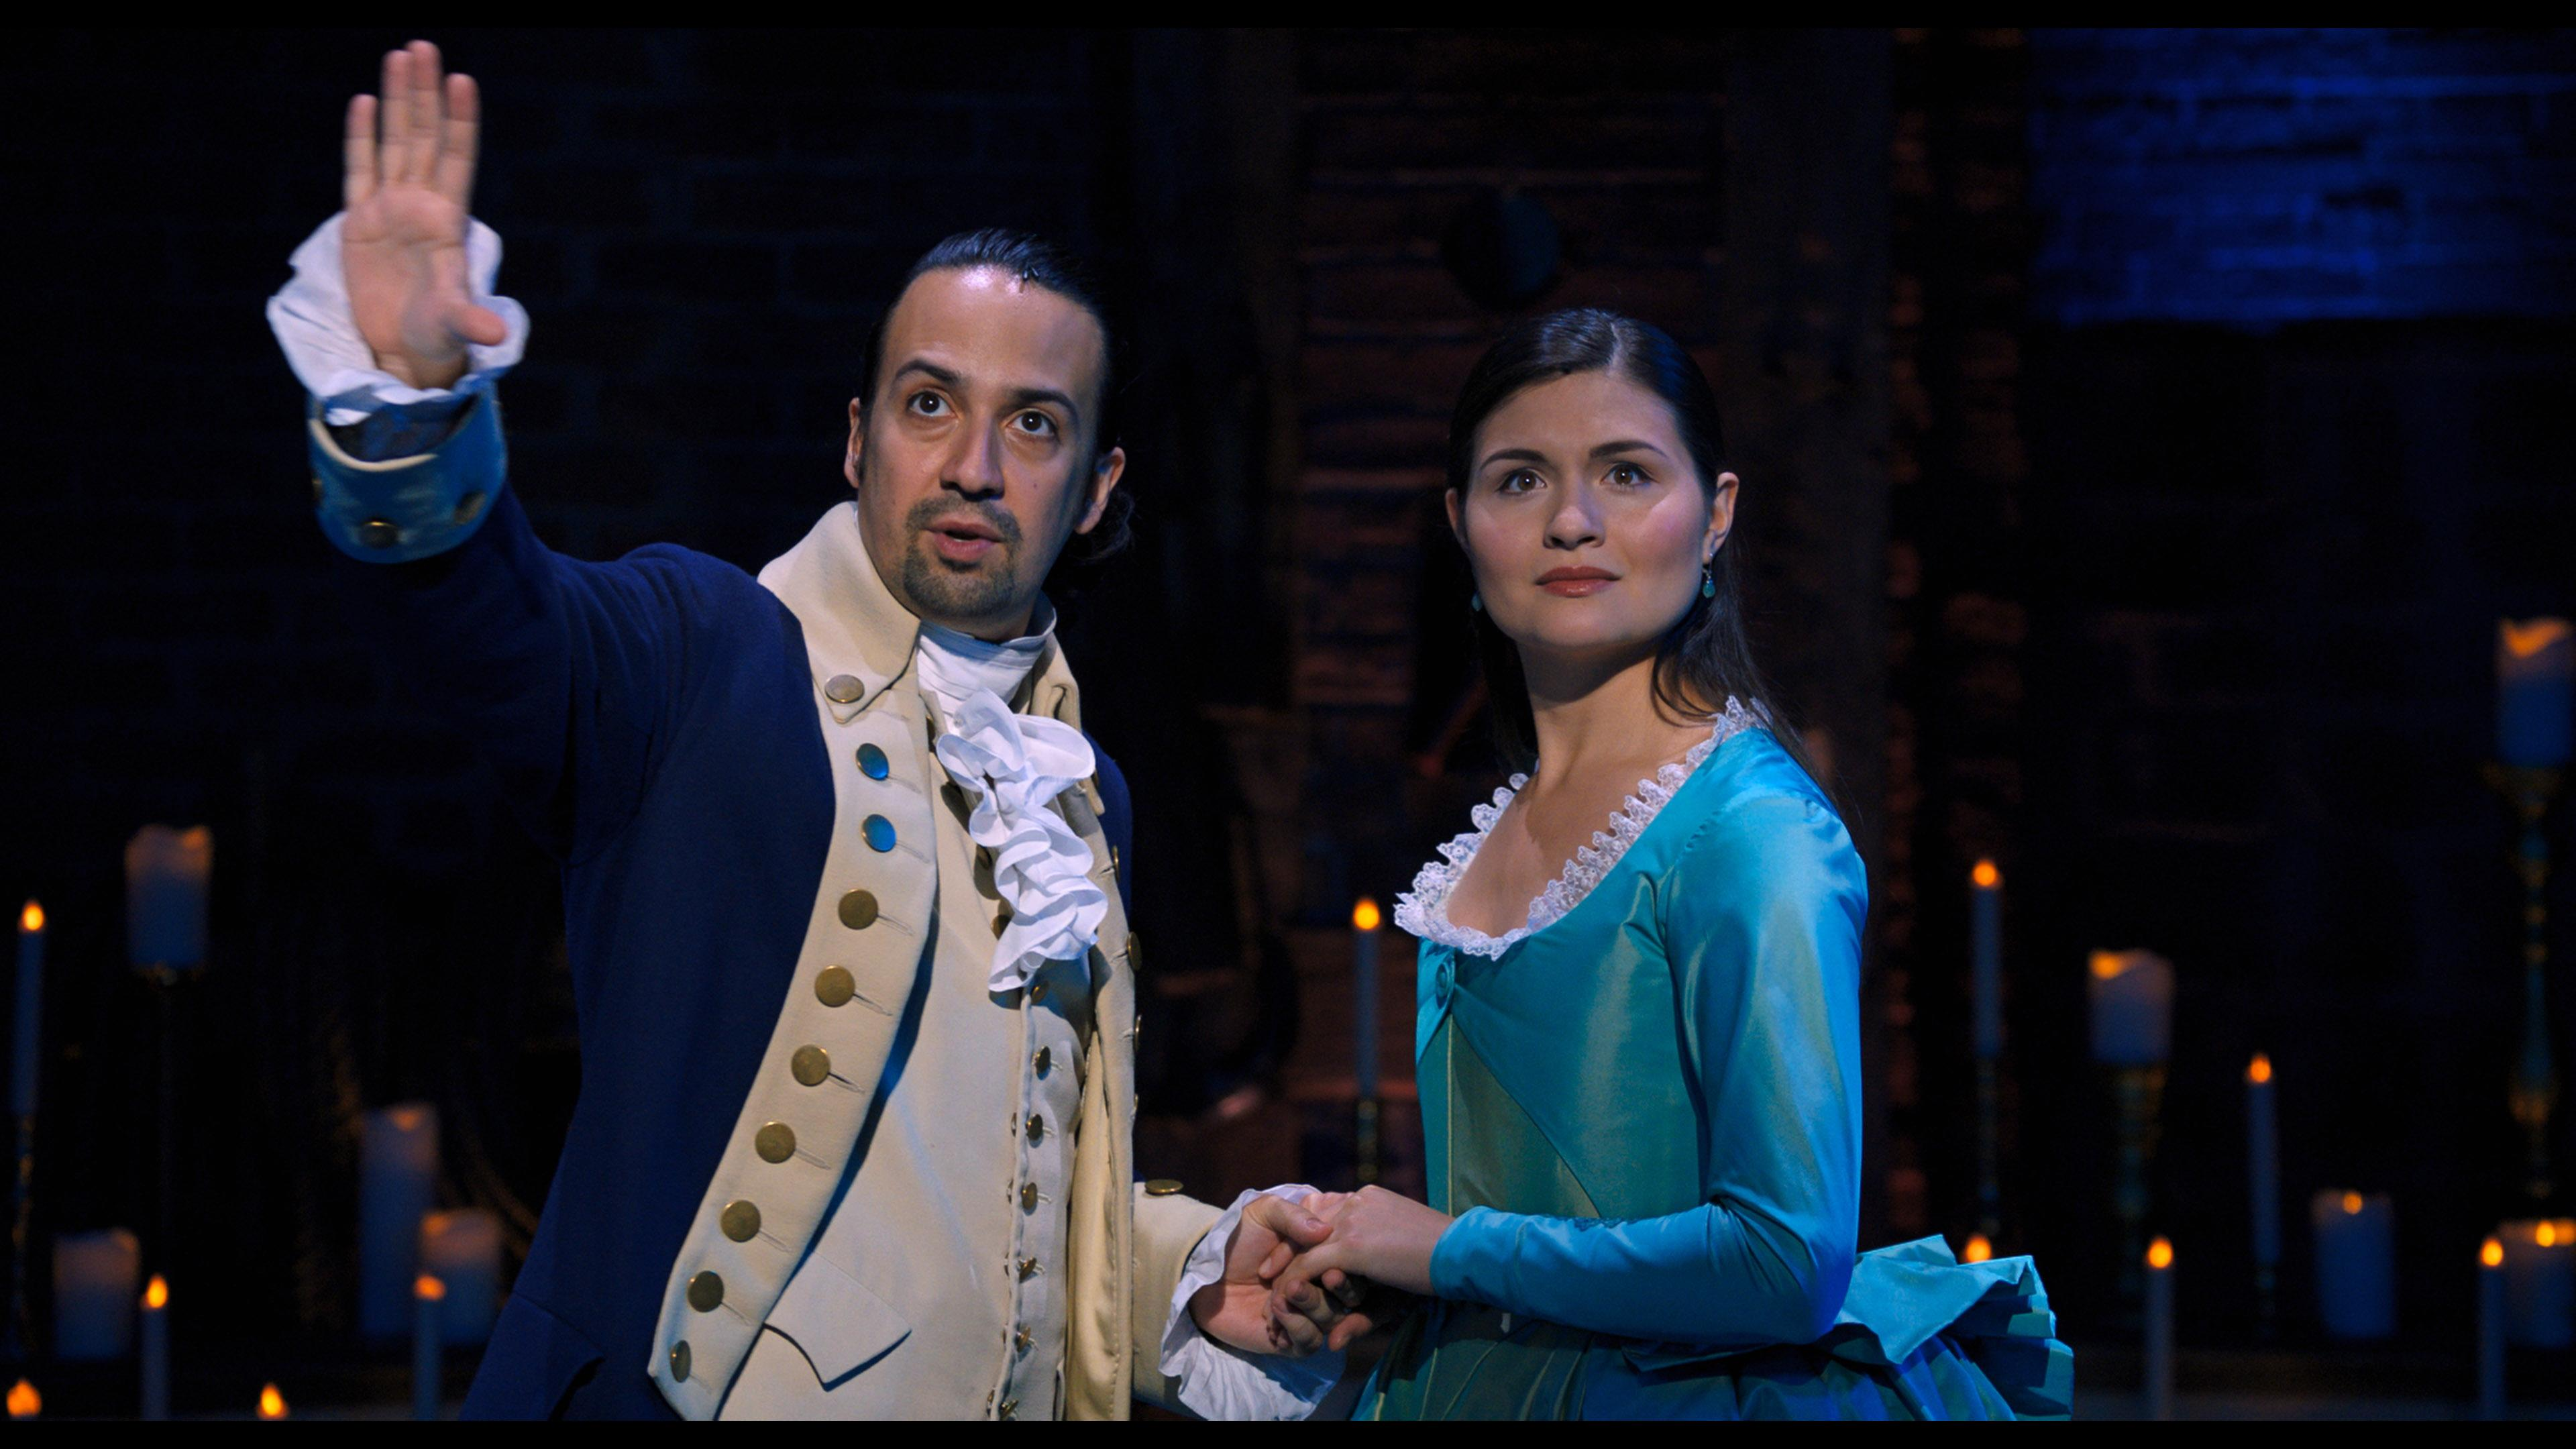 Lin-Manuel Miranda is Alexander Hamilton and Phillipa Soo is Eliza Hamilton in HAMILTON, the filmed version of the original Broadway production (Credit: Disney)